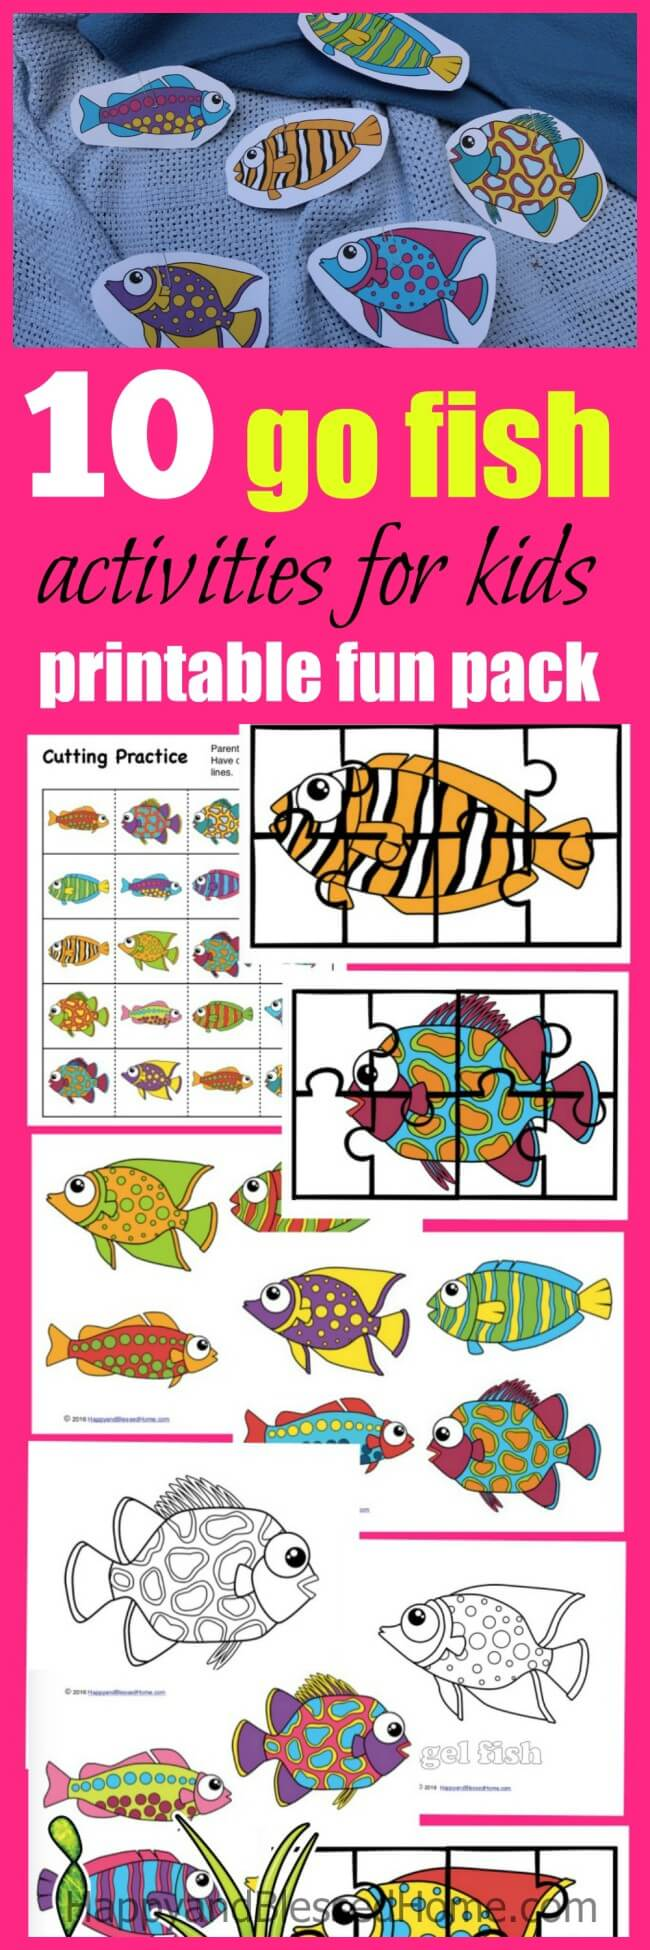 Wow! My kids loved this game - 10 go fish activities for kids in a printable fun pack